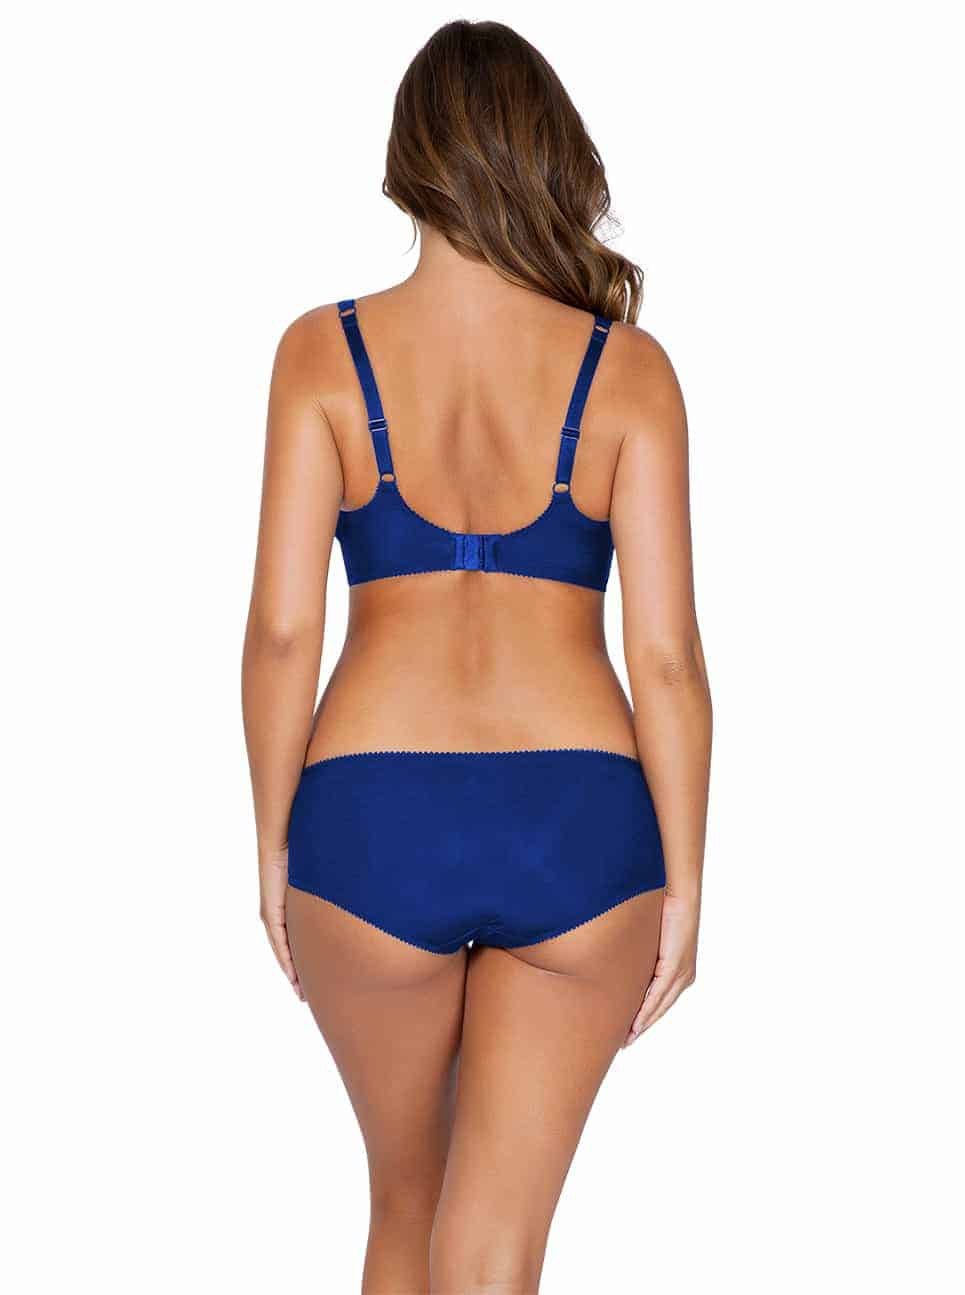 Marion P5392UnlinedWire P5395HipsterBlueBack copy - Marion Unlined Wire Bra - Lapis Blue – P5392